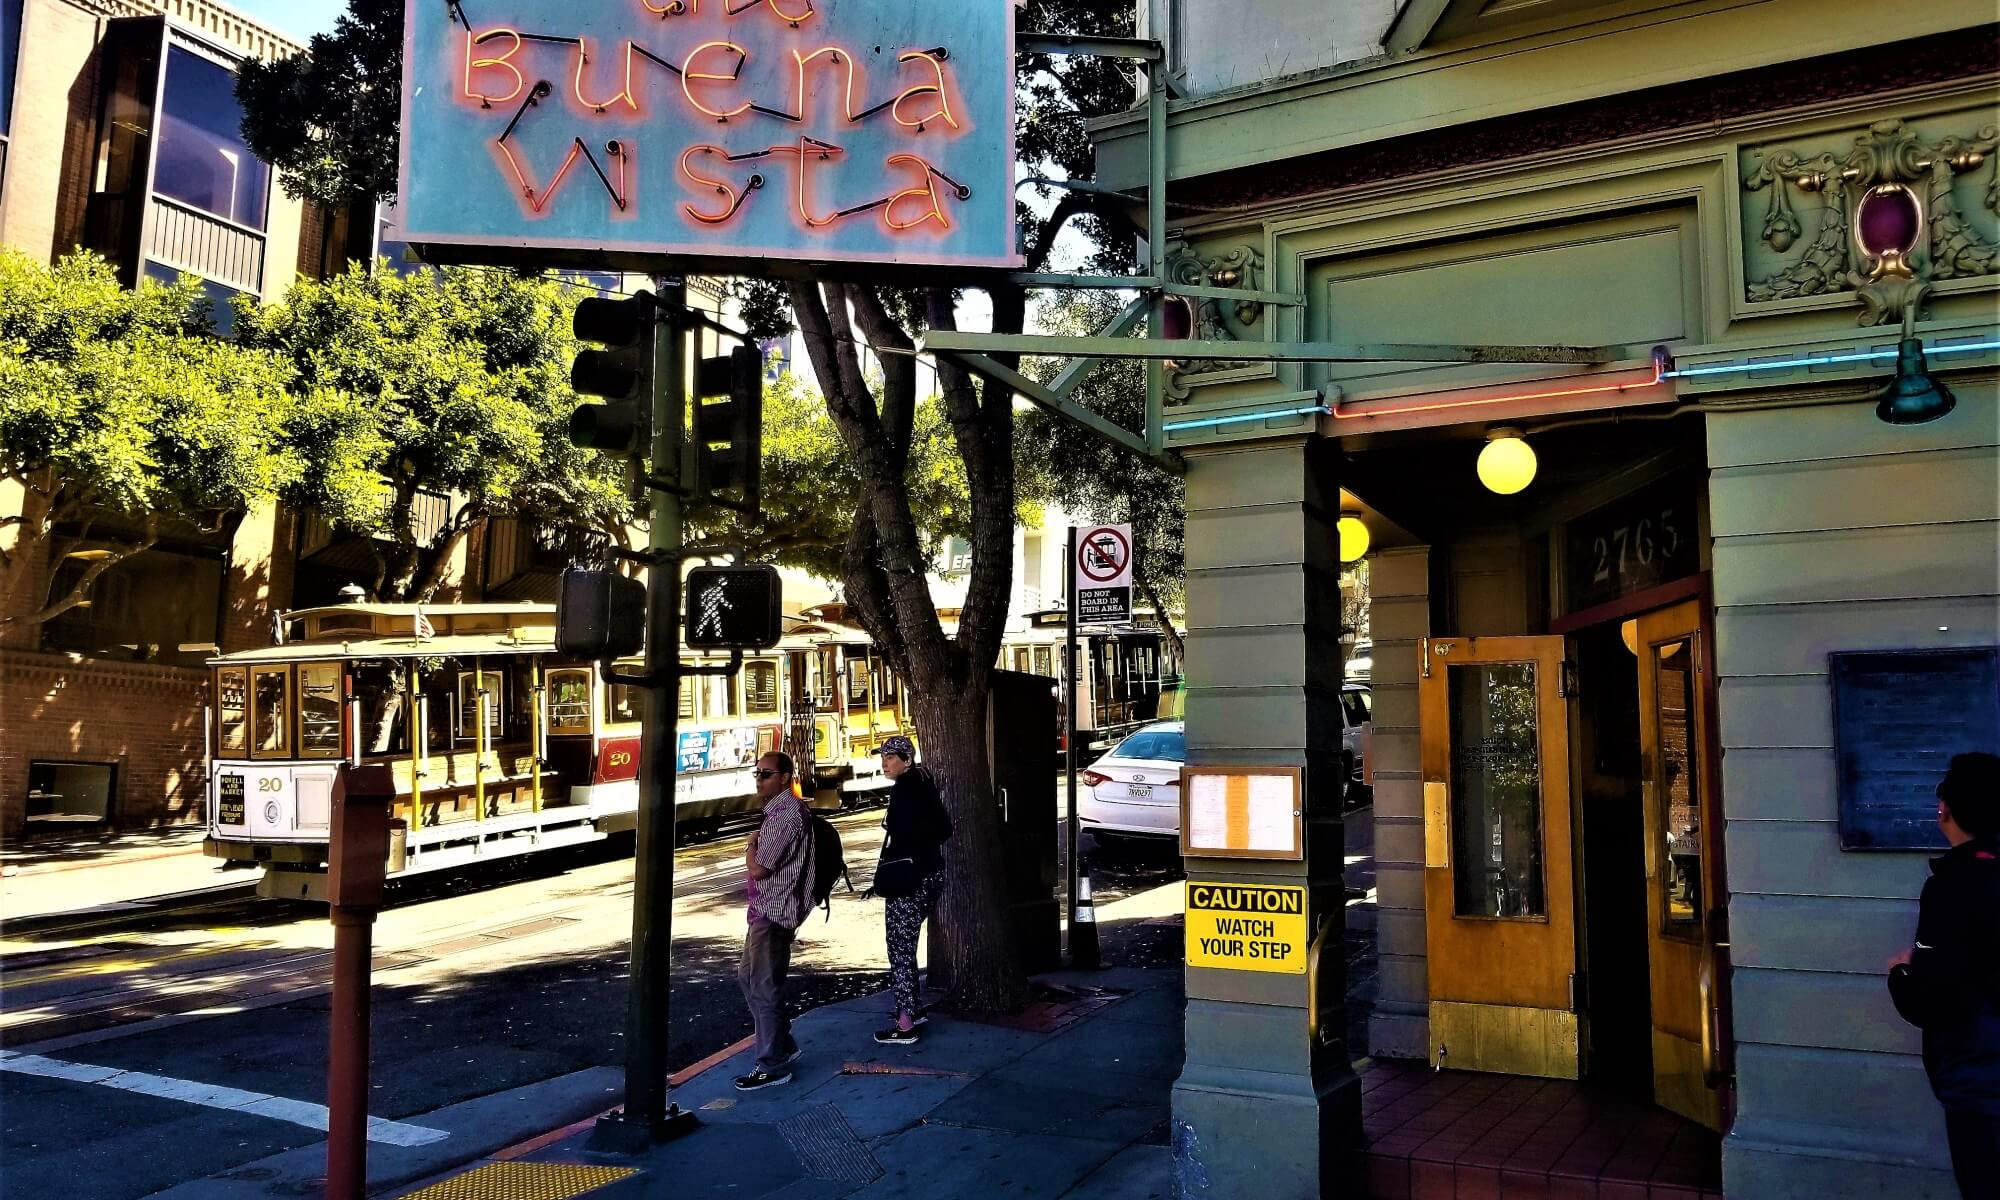 Buena vista cafe san francisco (courtesy of accidentaltravelwriter.com)